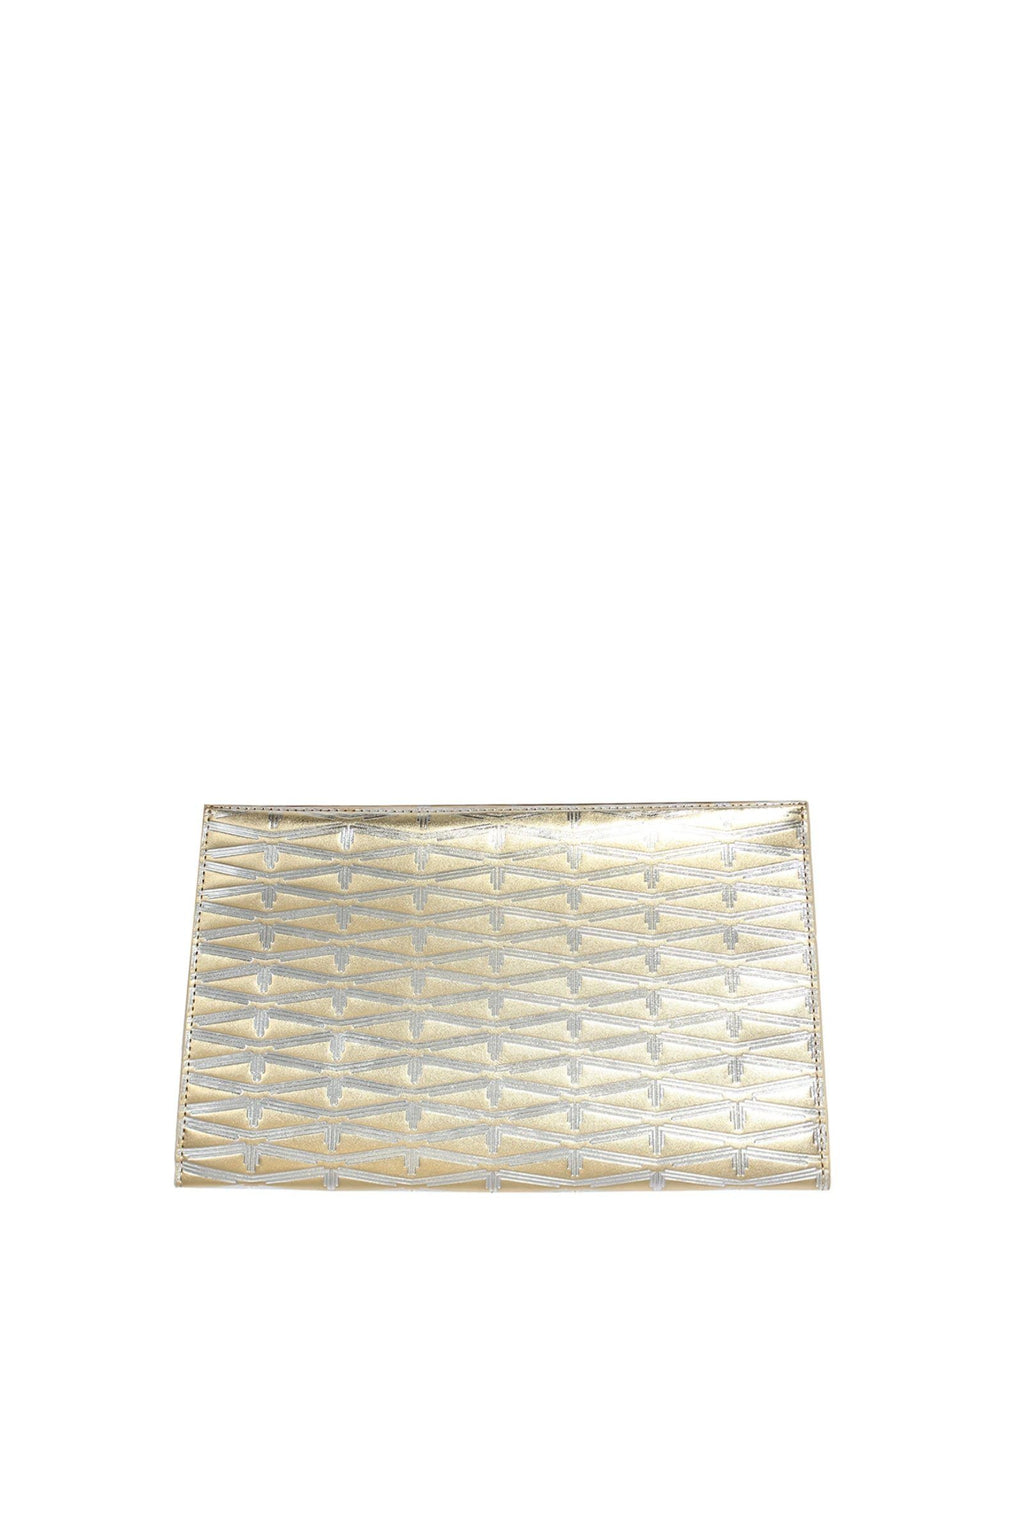 Monogram Metallic Leather Clutch Accessories Marie France Van Damme Gold/Silver